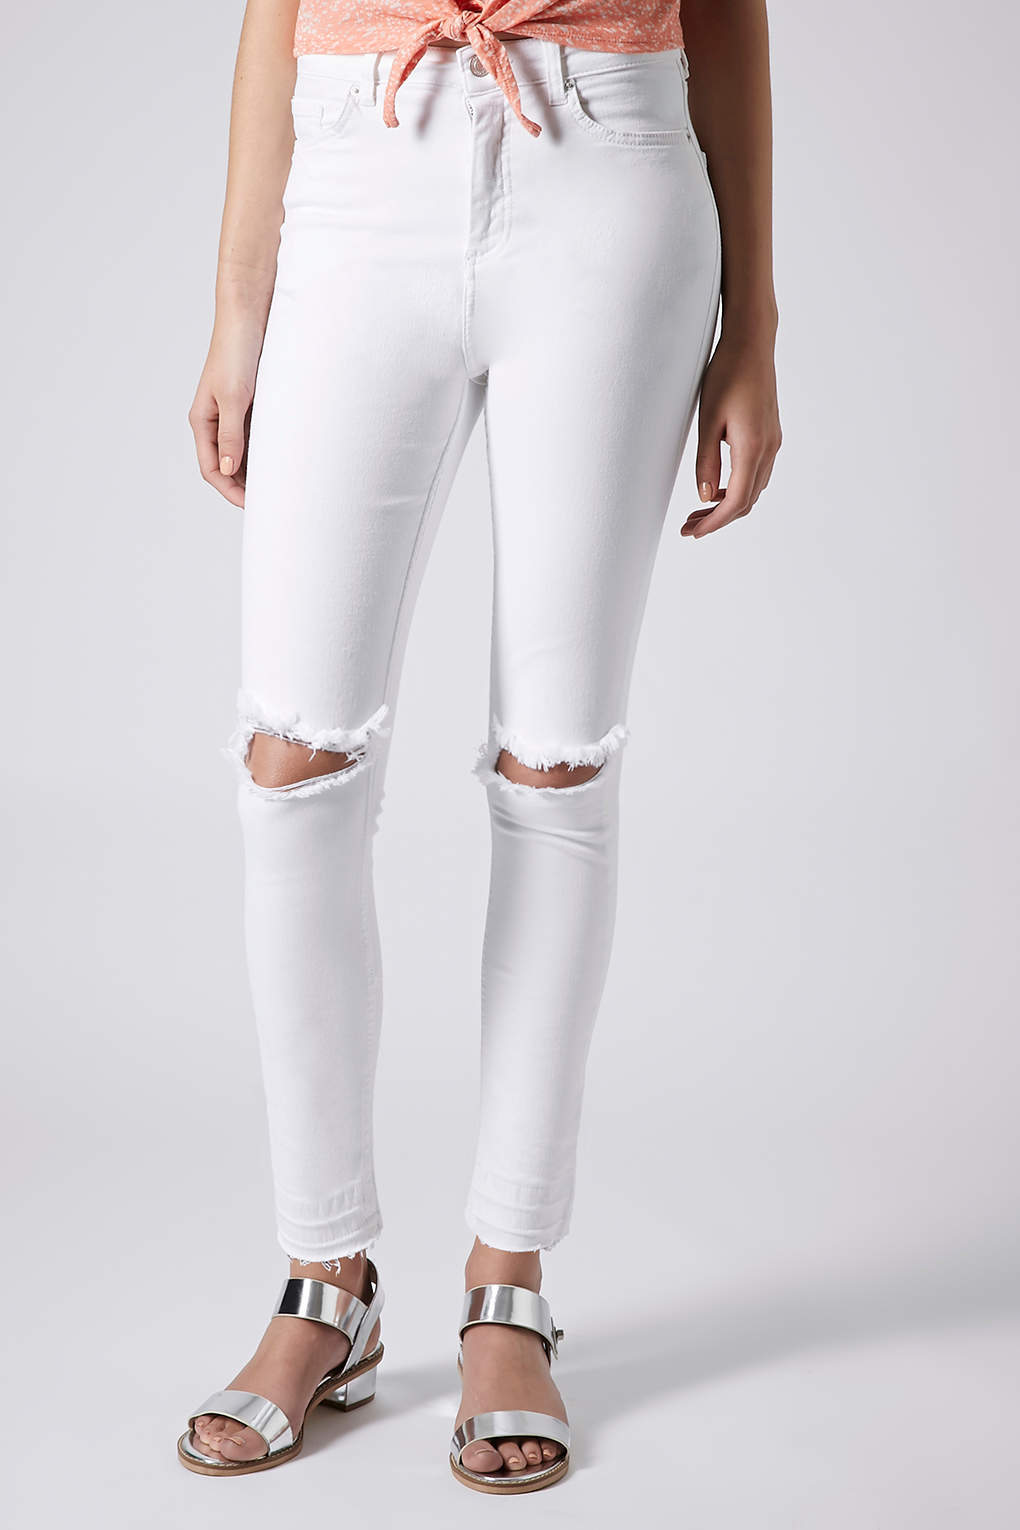 Topshop Moto White Ripped Jamie Jeans in White | Lyst